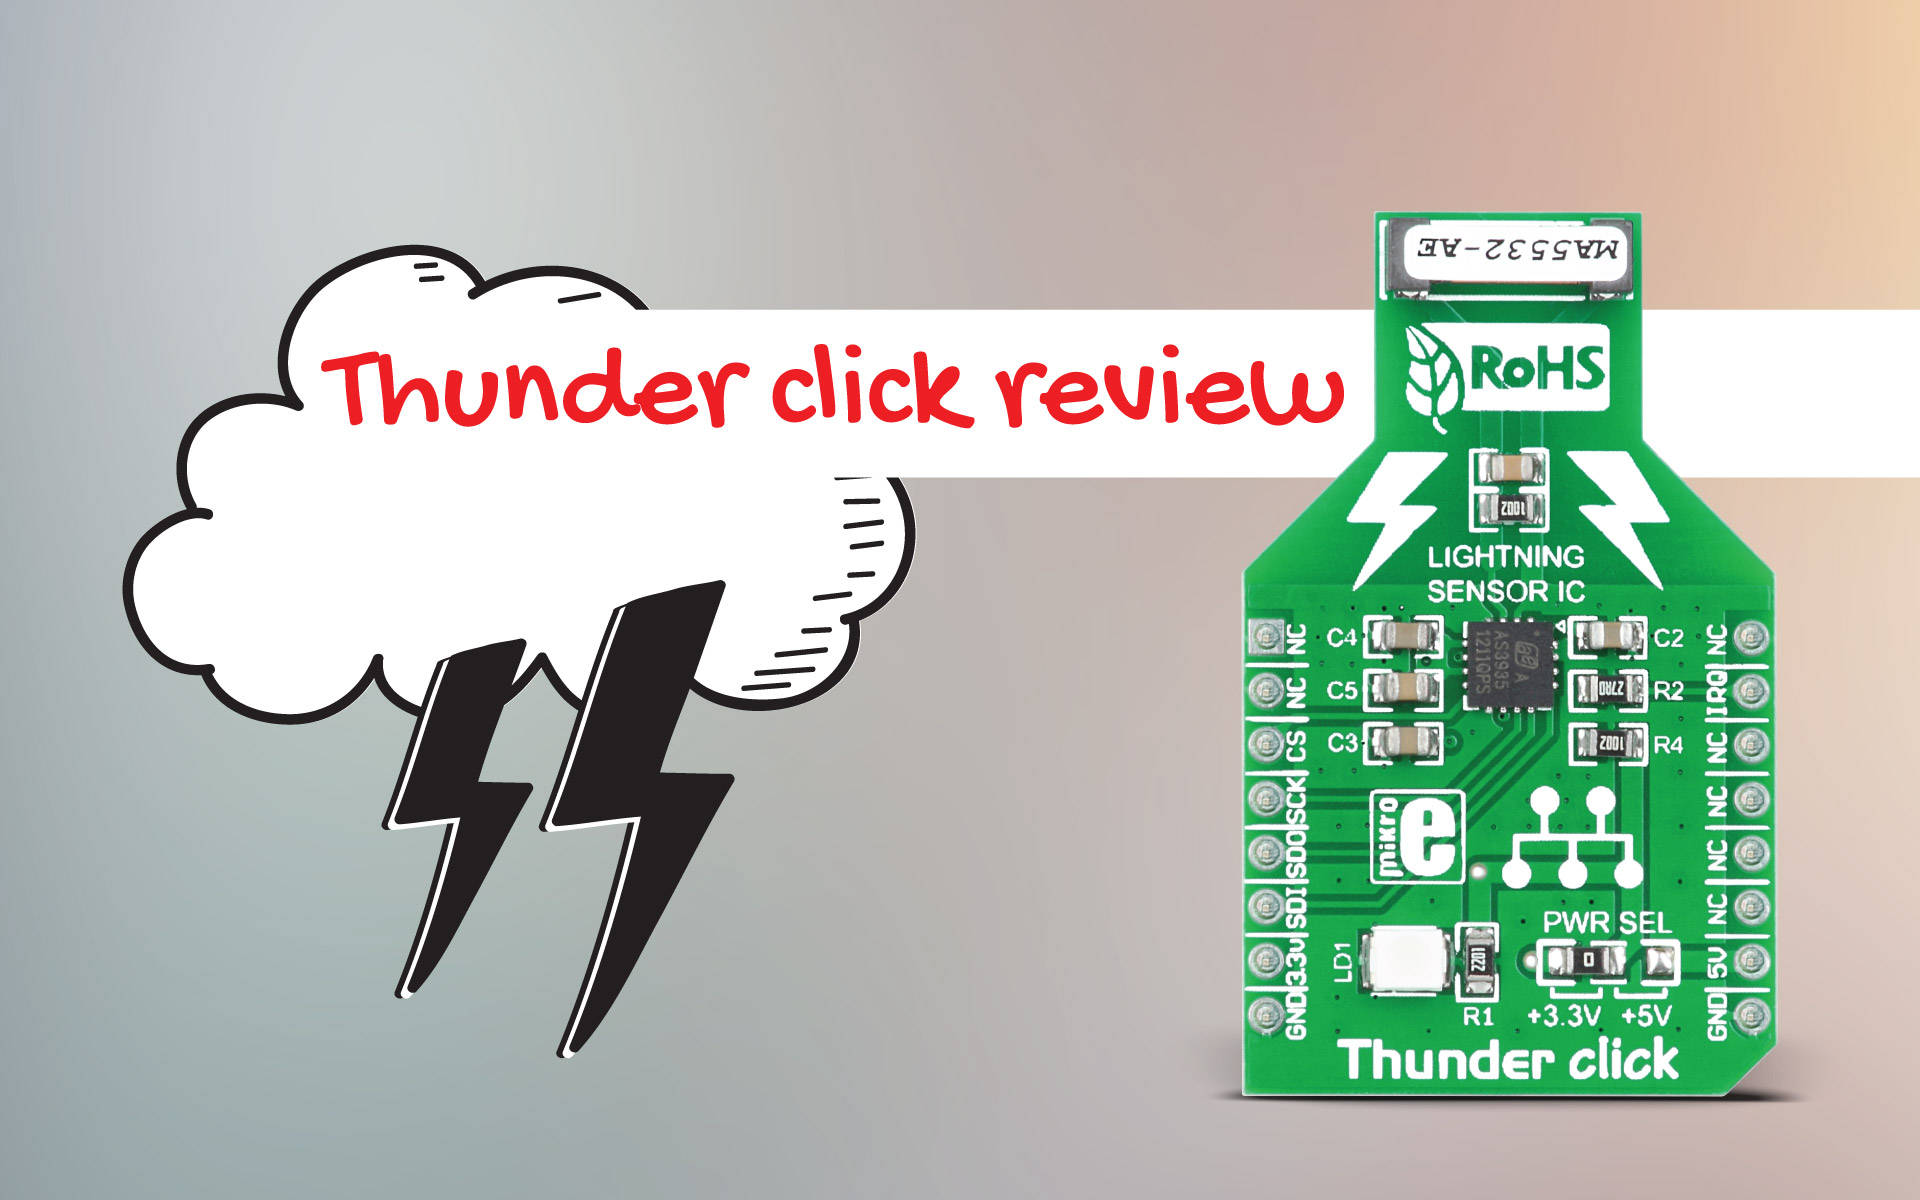 Thunder click review - get hit by inspiration, not lightning!